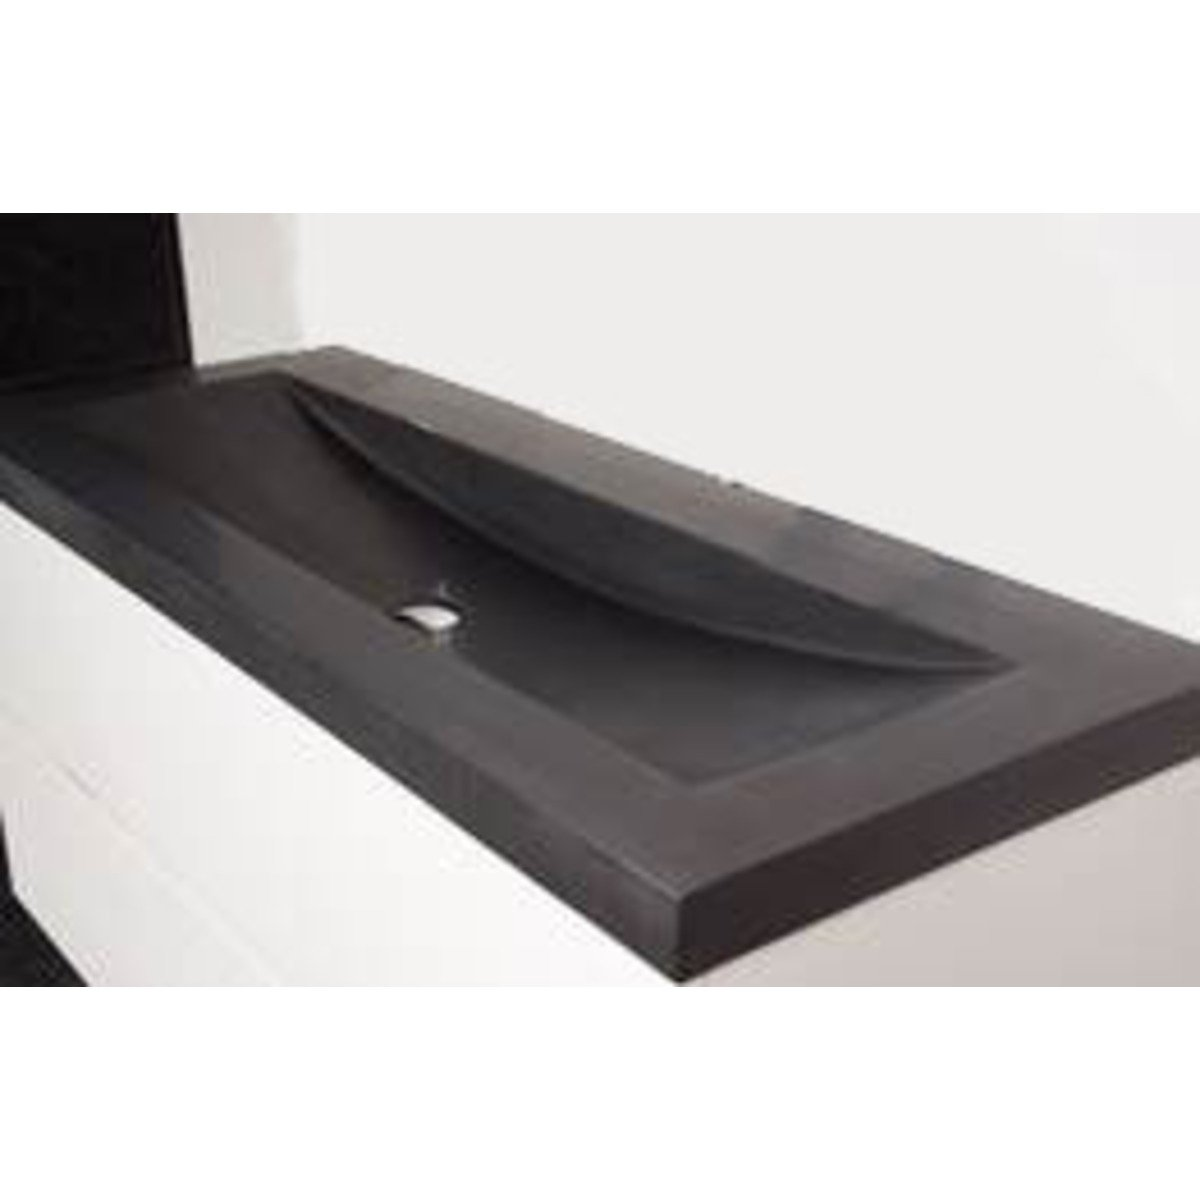 saniclass corestone13 lavabo pour meuble peu profond 60cm sans trous pour robinetterie basalte. Black Bedroom Furniture Sets. Home Design Ideas